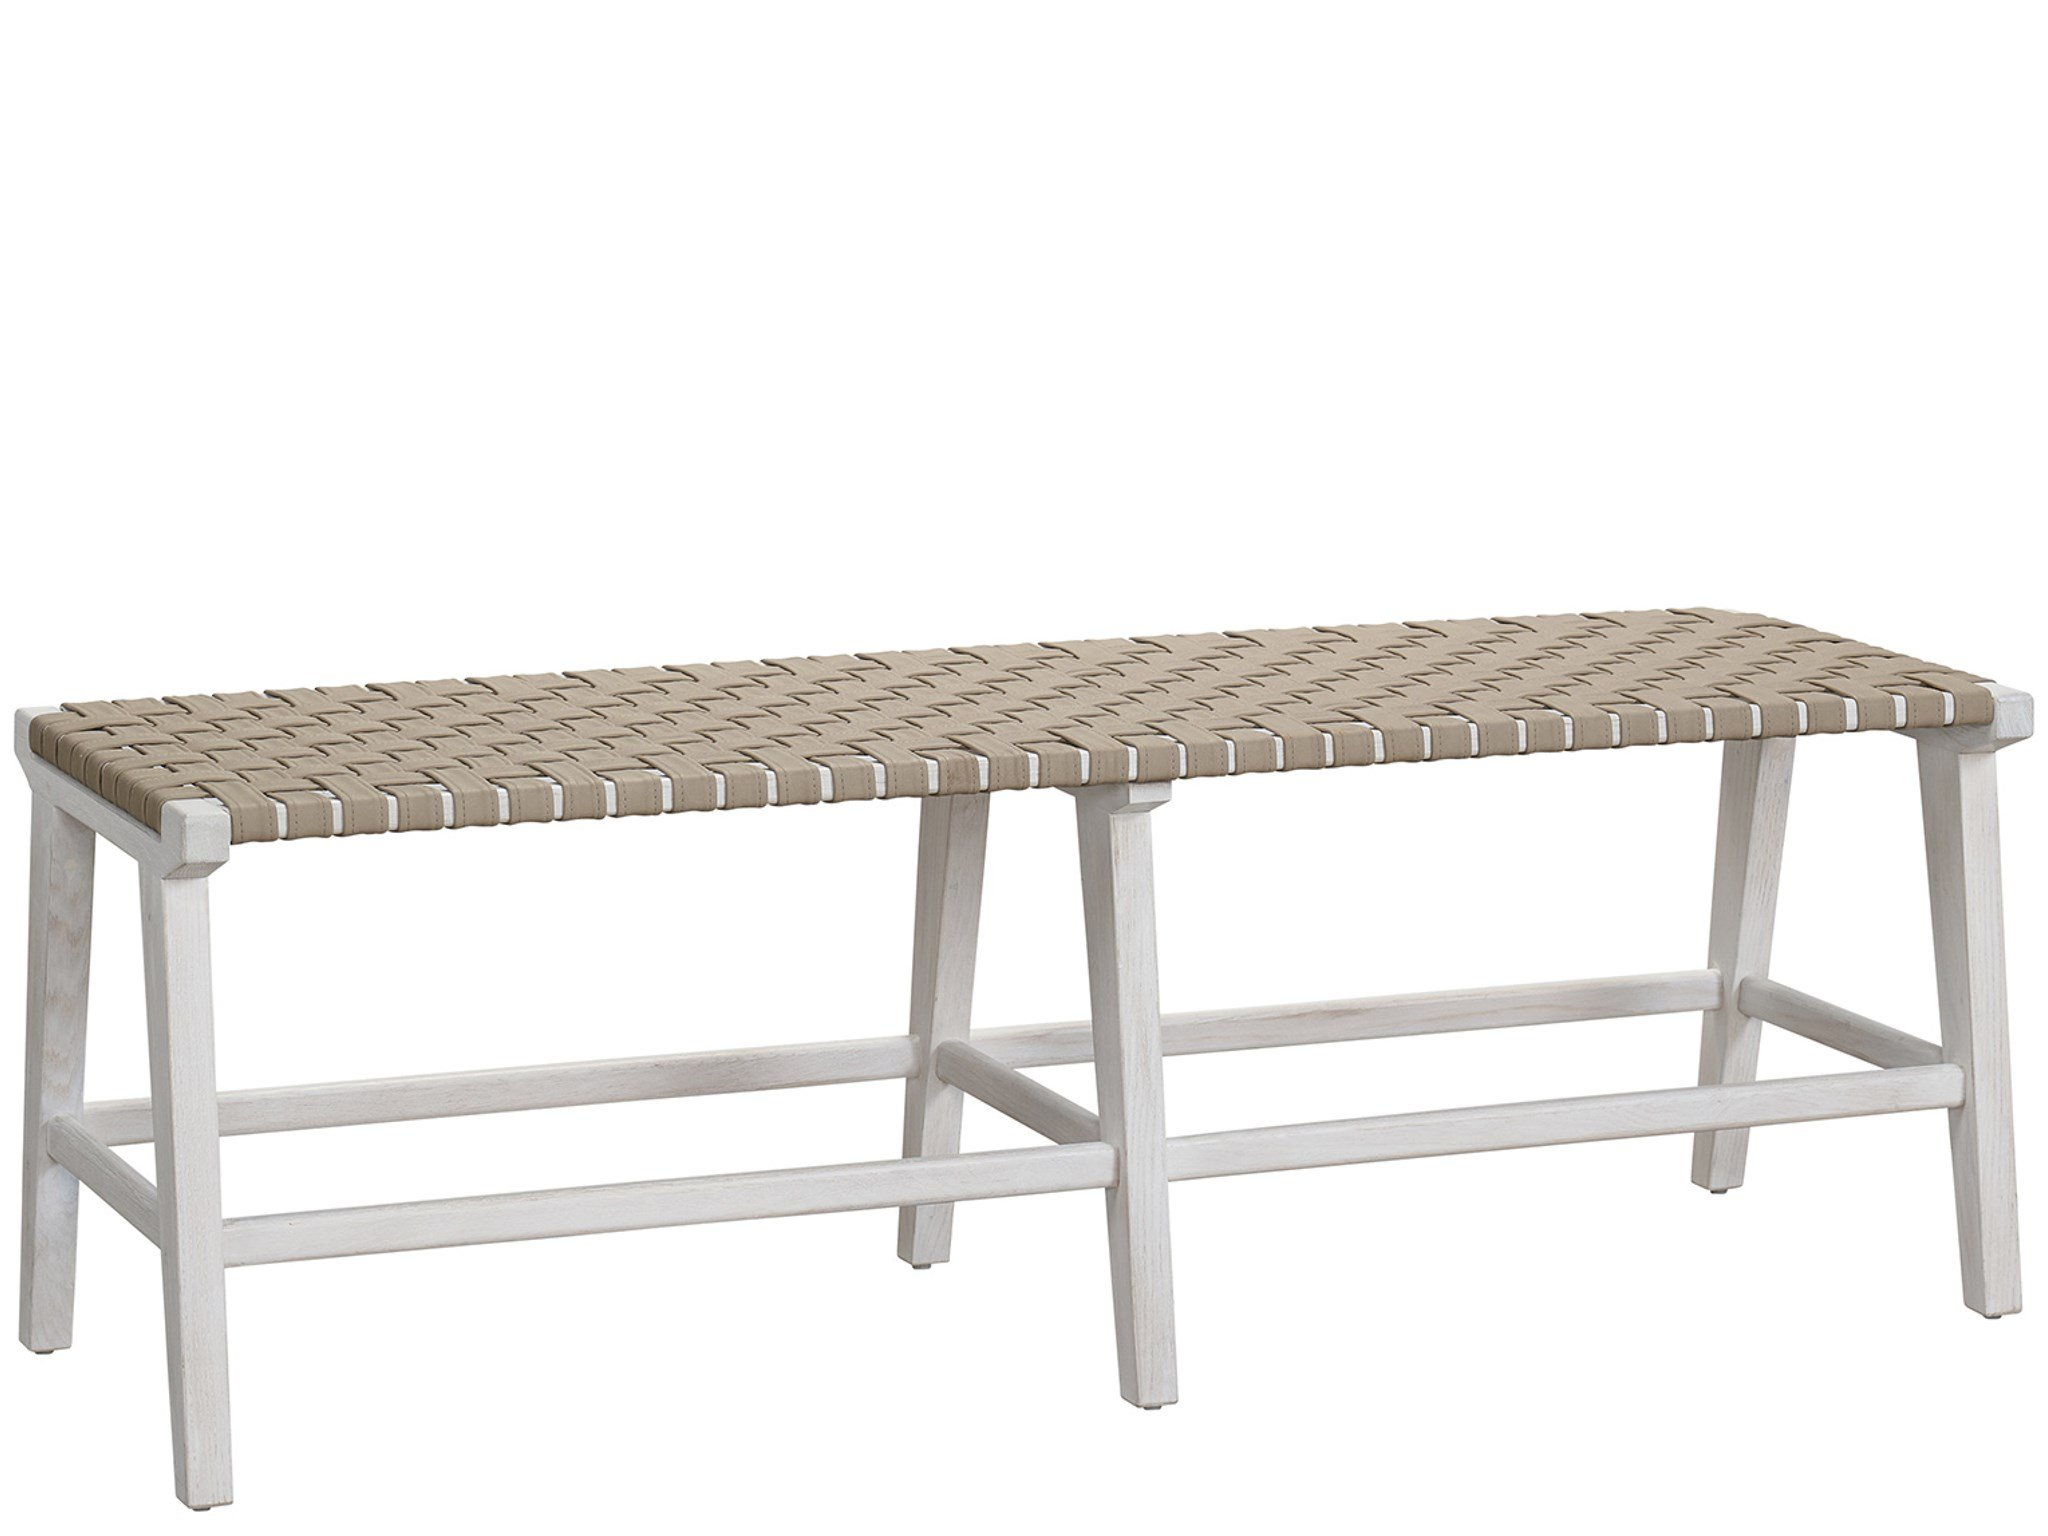 Harlyn Bench